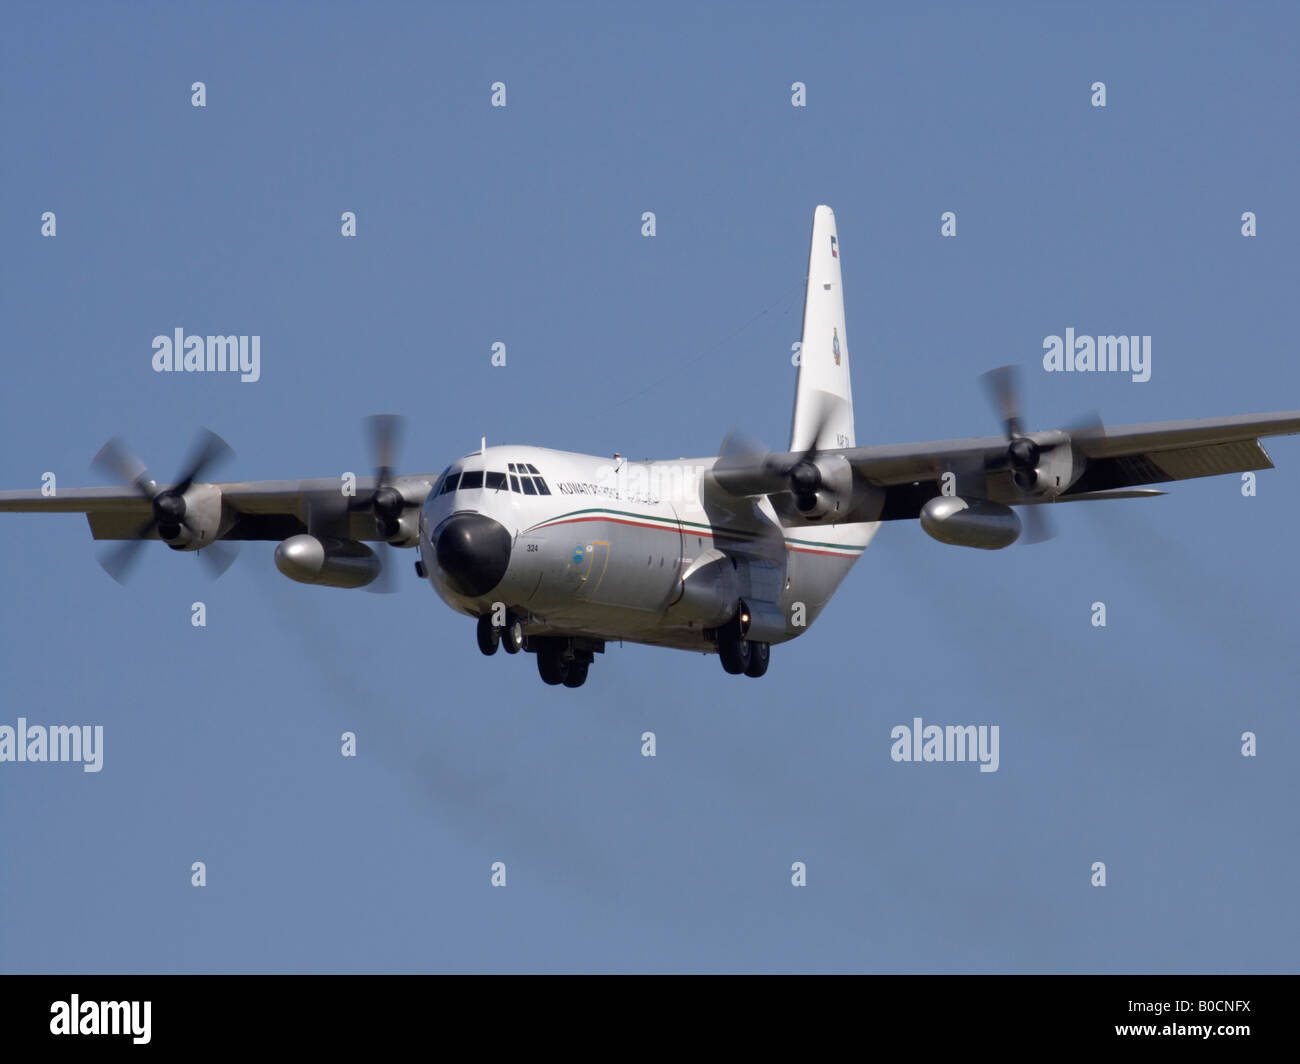 Kuwait Air Force Hercules on arrival - Stock Image